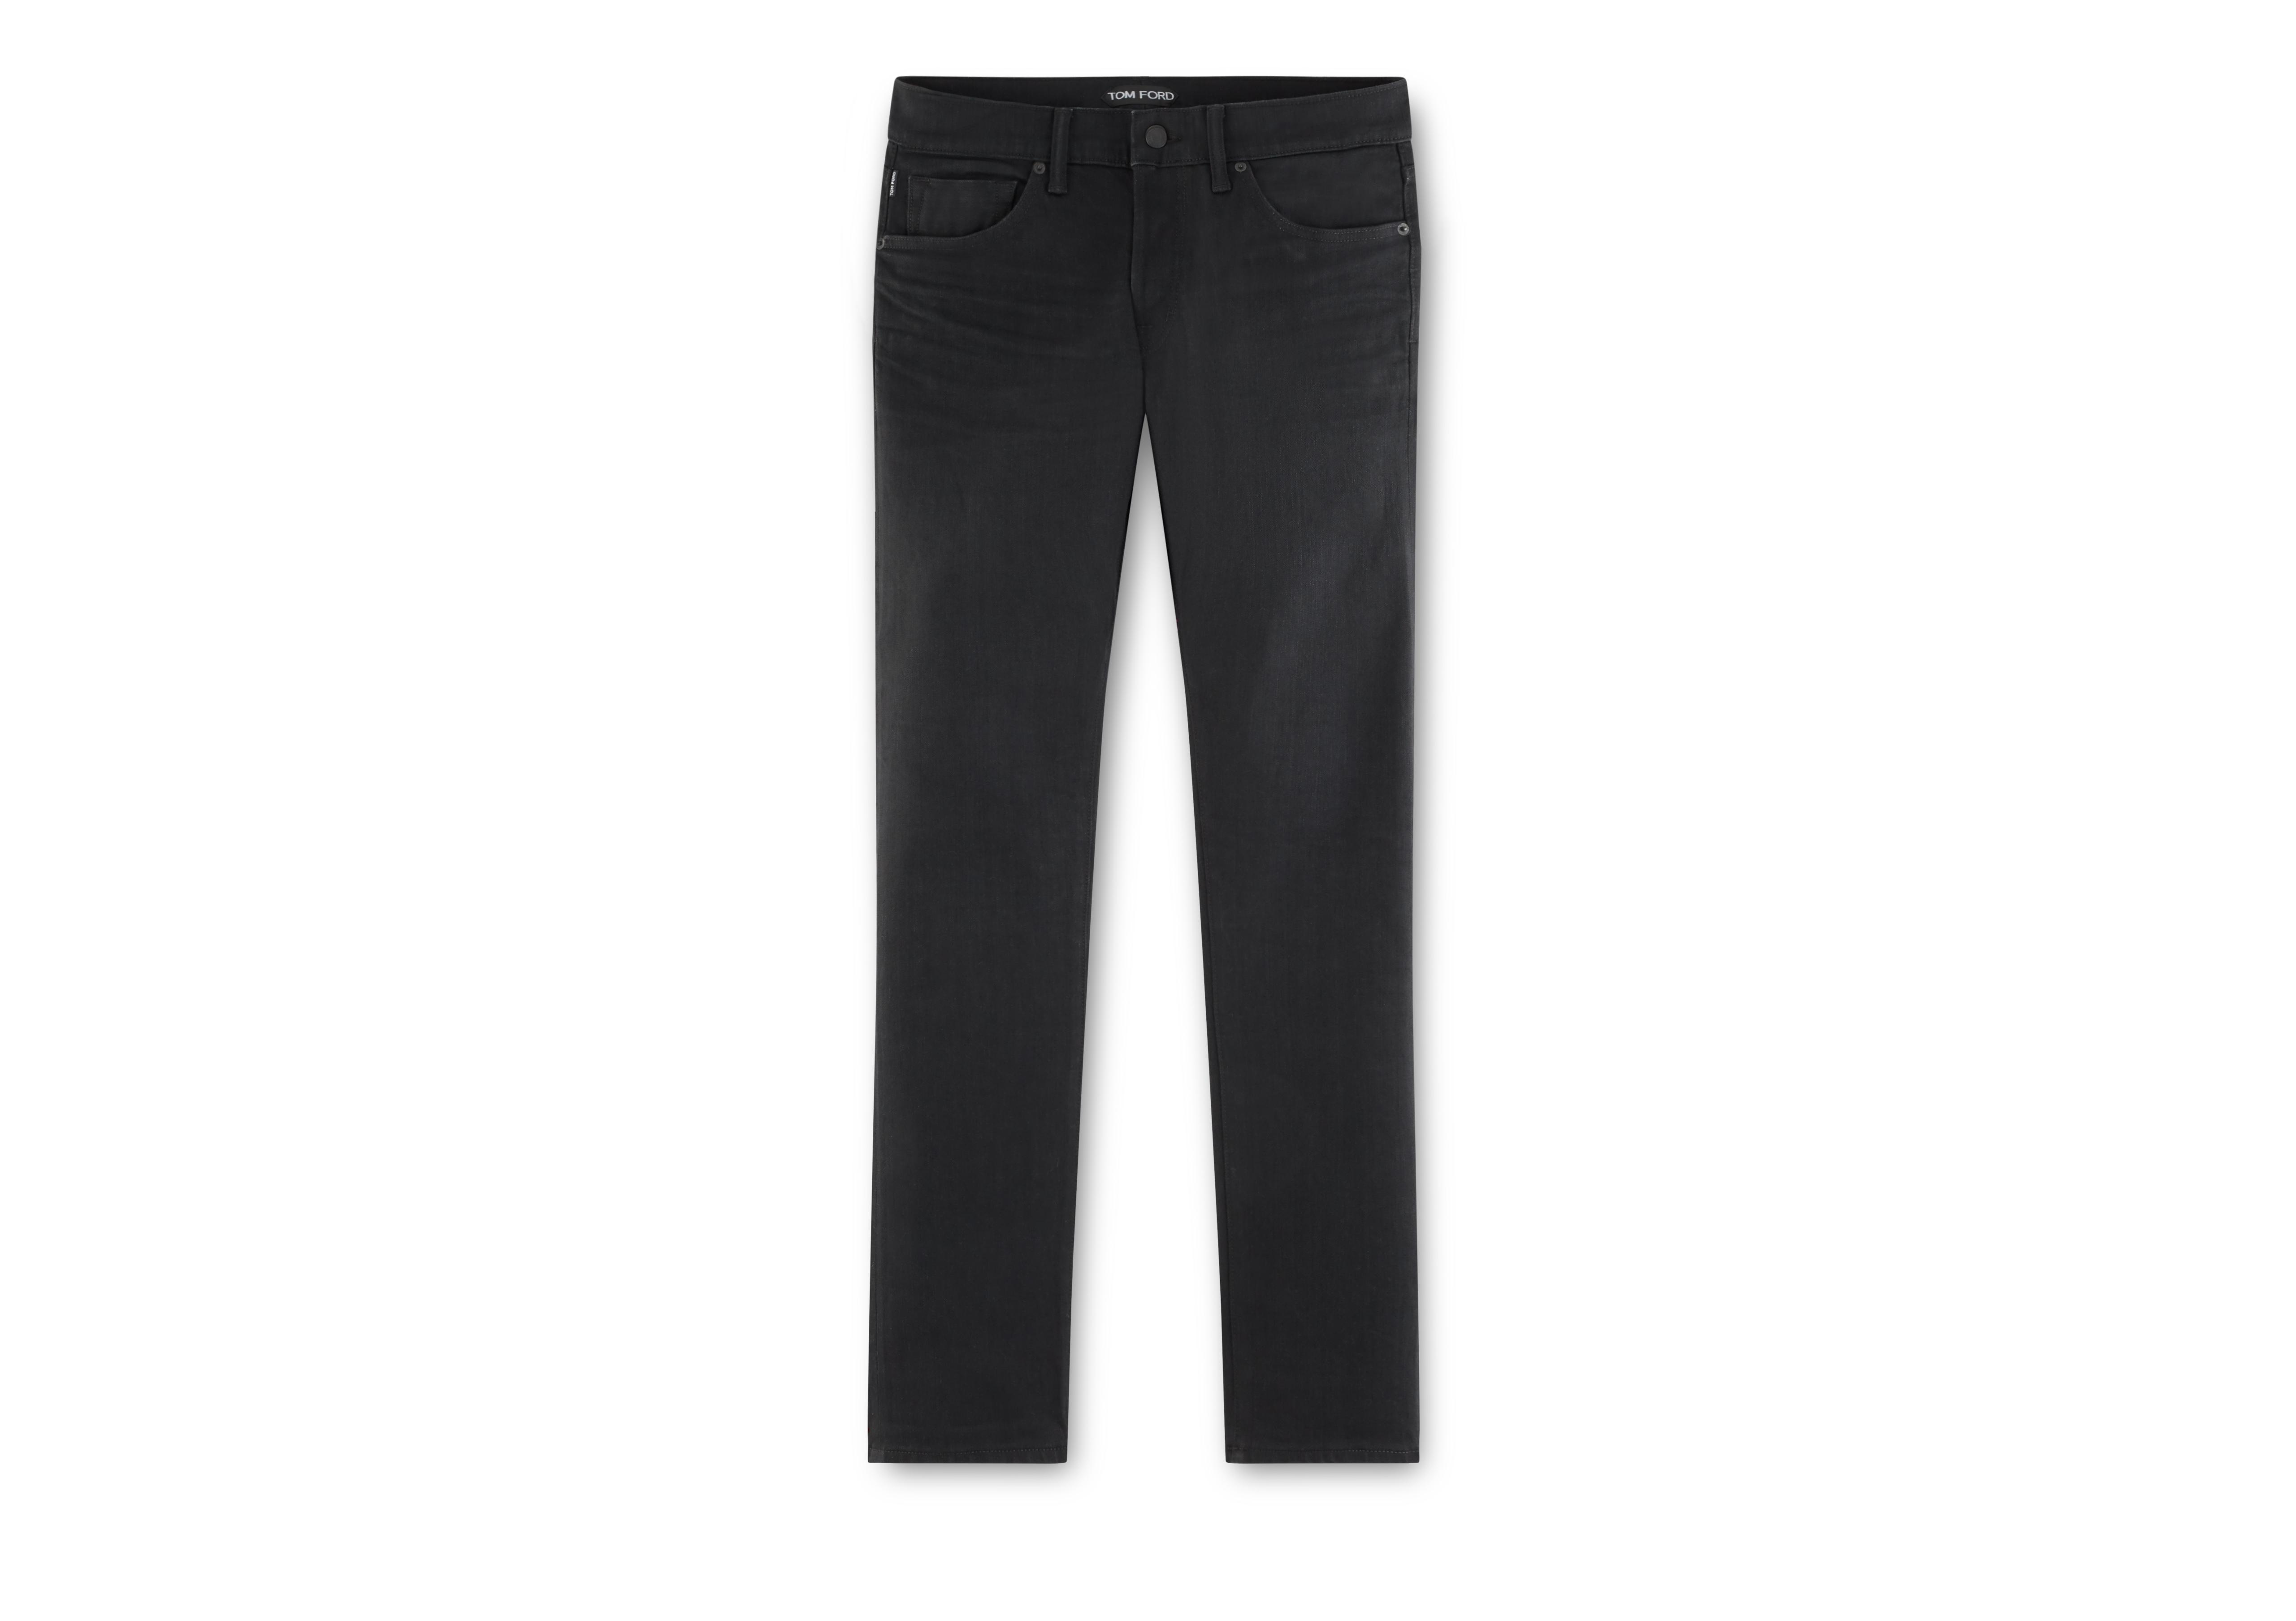 STRAIGHT BLACK SELVAGE JEANS A thumbnail